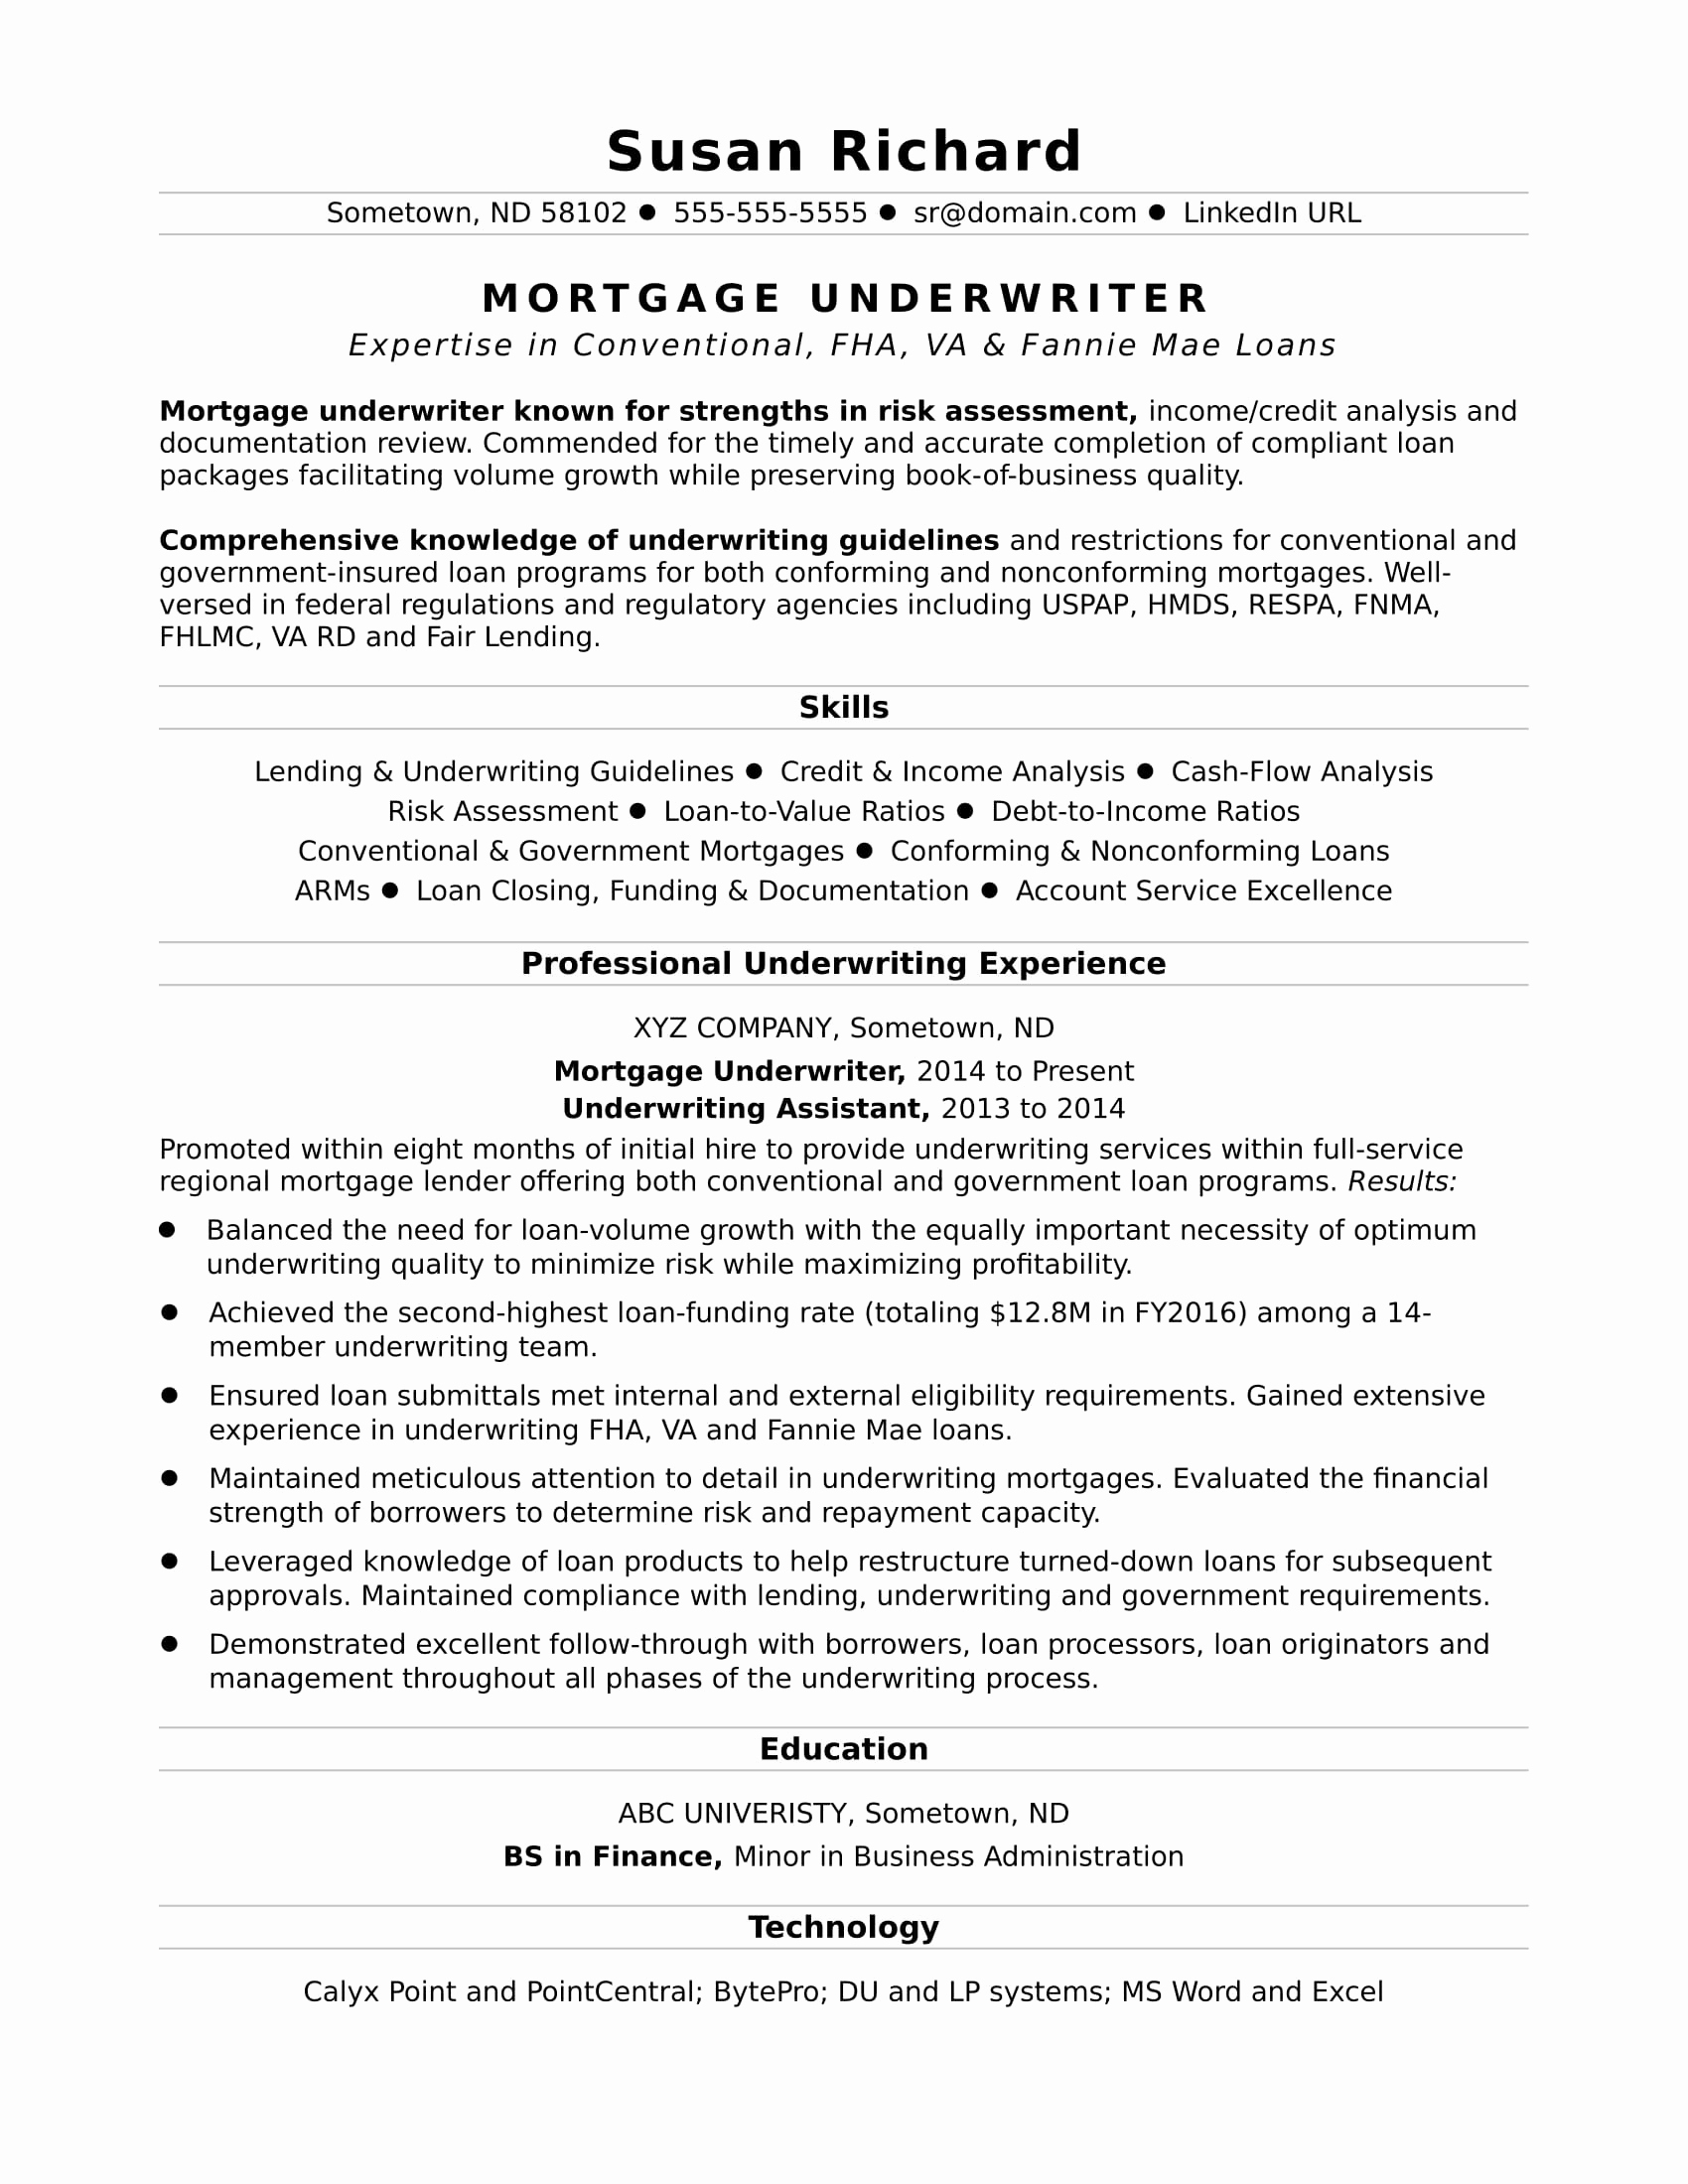 rfp cover letter template Collection-Underwriter Cover Letter Lovely Detailed Resume Template Luxury Signs Templates 2018 Rfp Template 0d 16-k